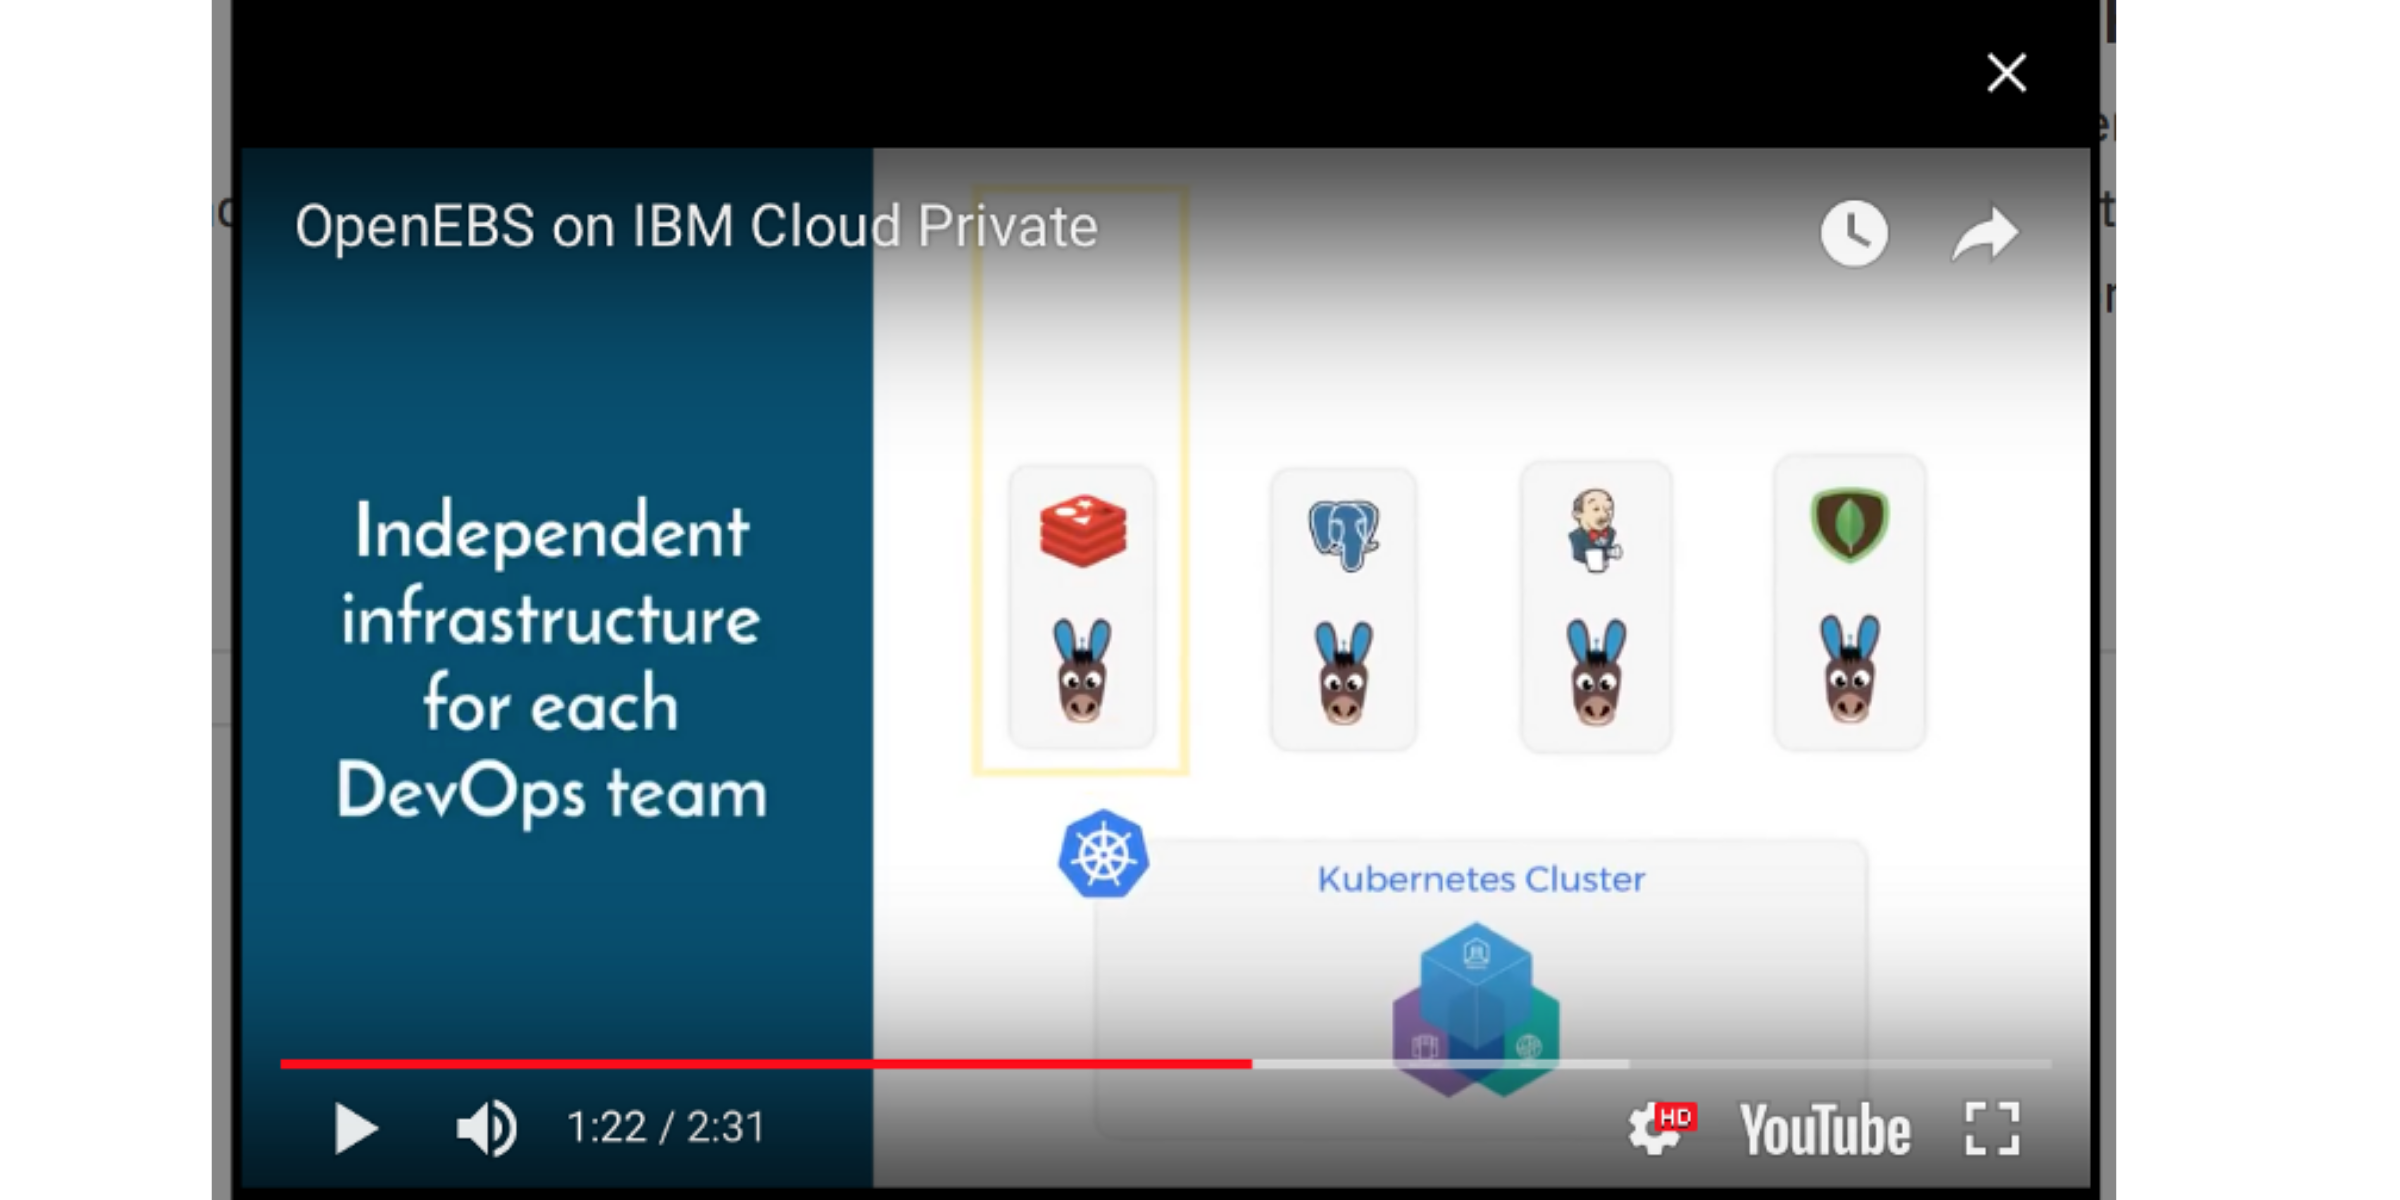 OpenEBS on IBM Cloud Private